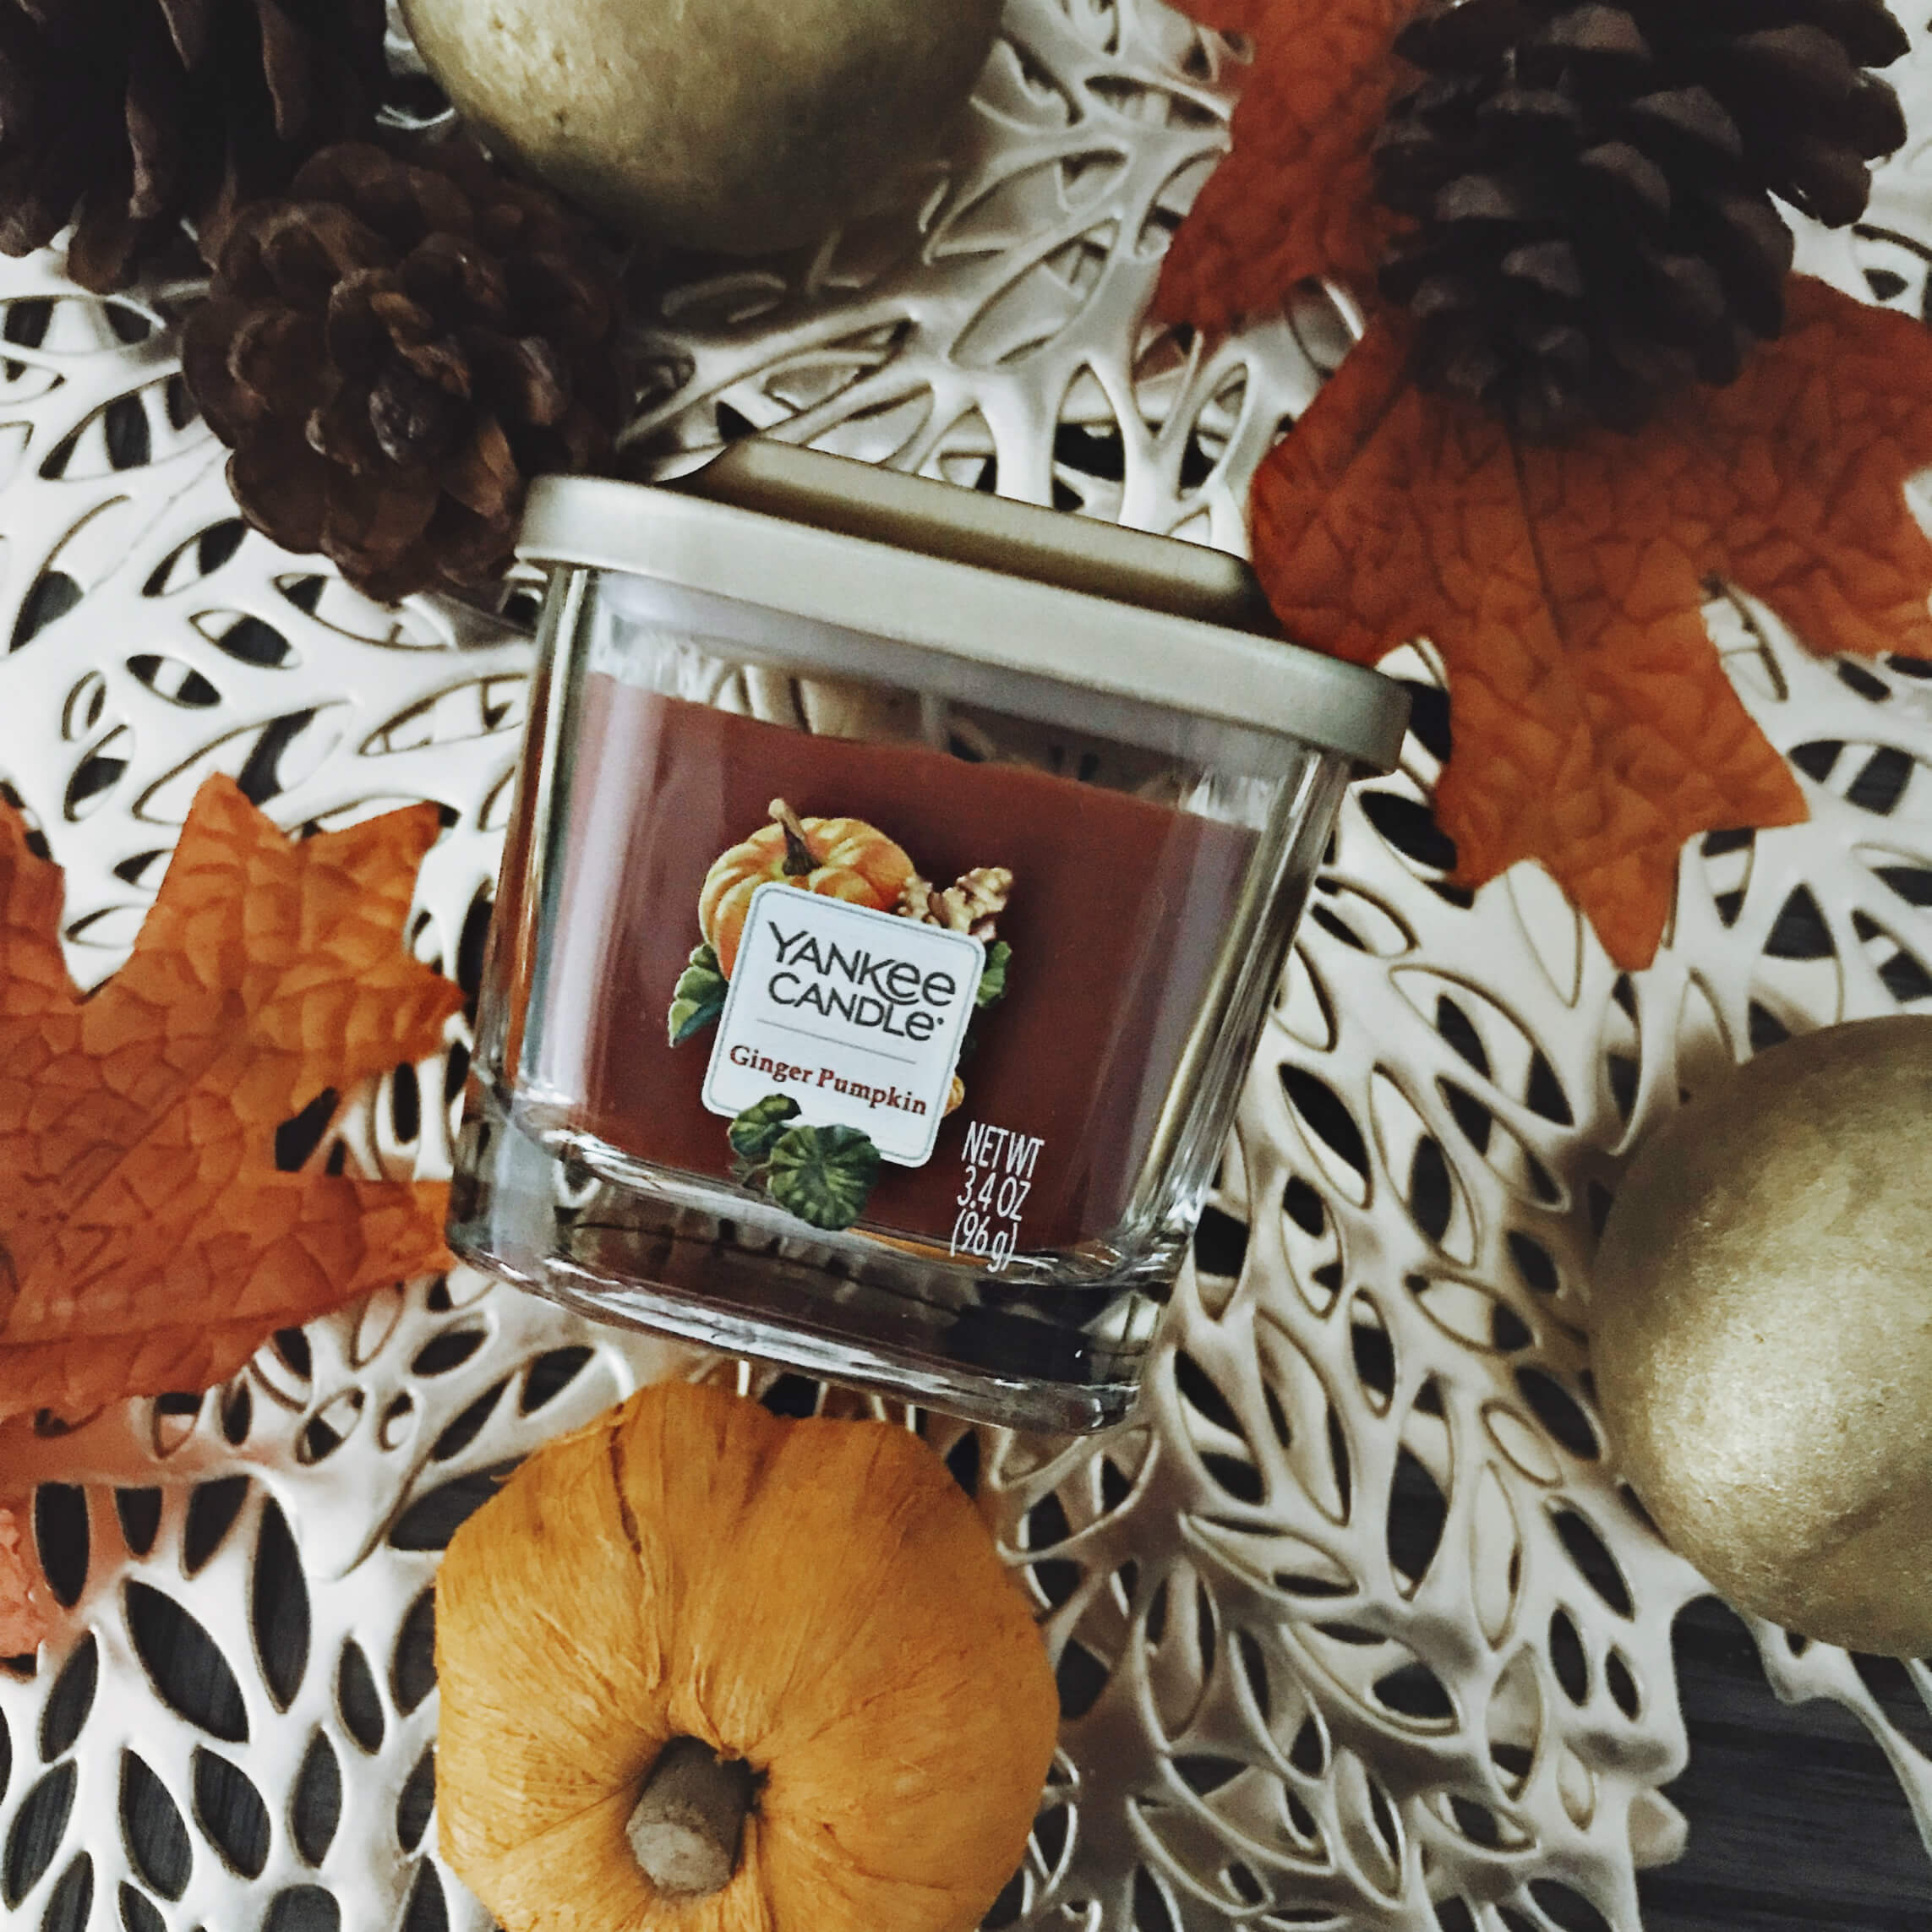 Yankee Candle Elevation Collection with Platform Lid, Ginger Pumpkin, Fall Seasonal Scented Candles, Fall Decor, Fall Flat Lay, Tilden of To Be Bright